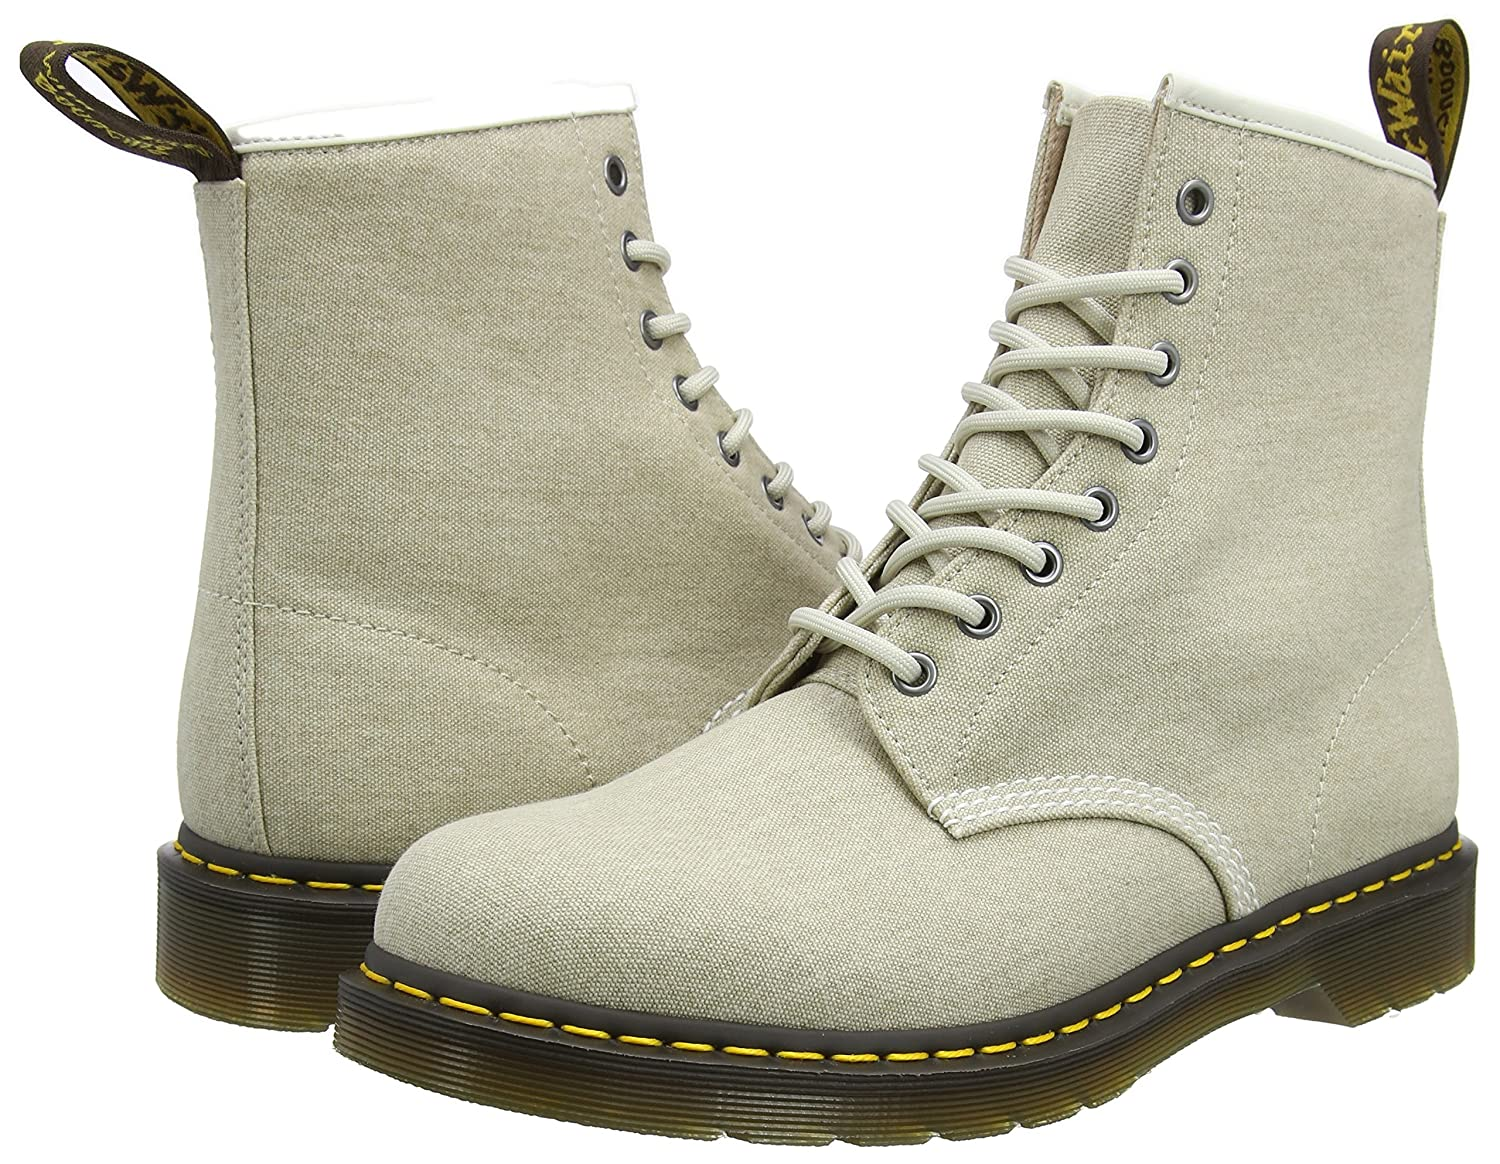 Dr. Martens Men's 1460 Combat Boot, 8.5 B(M) US Women/7.5 D(M) US Men B01ICEHHL0 8 F(M) UK / 10 B(M) US Women / 9 D(M) US Men|Bone Washed Canvas